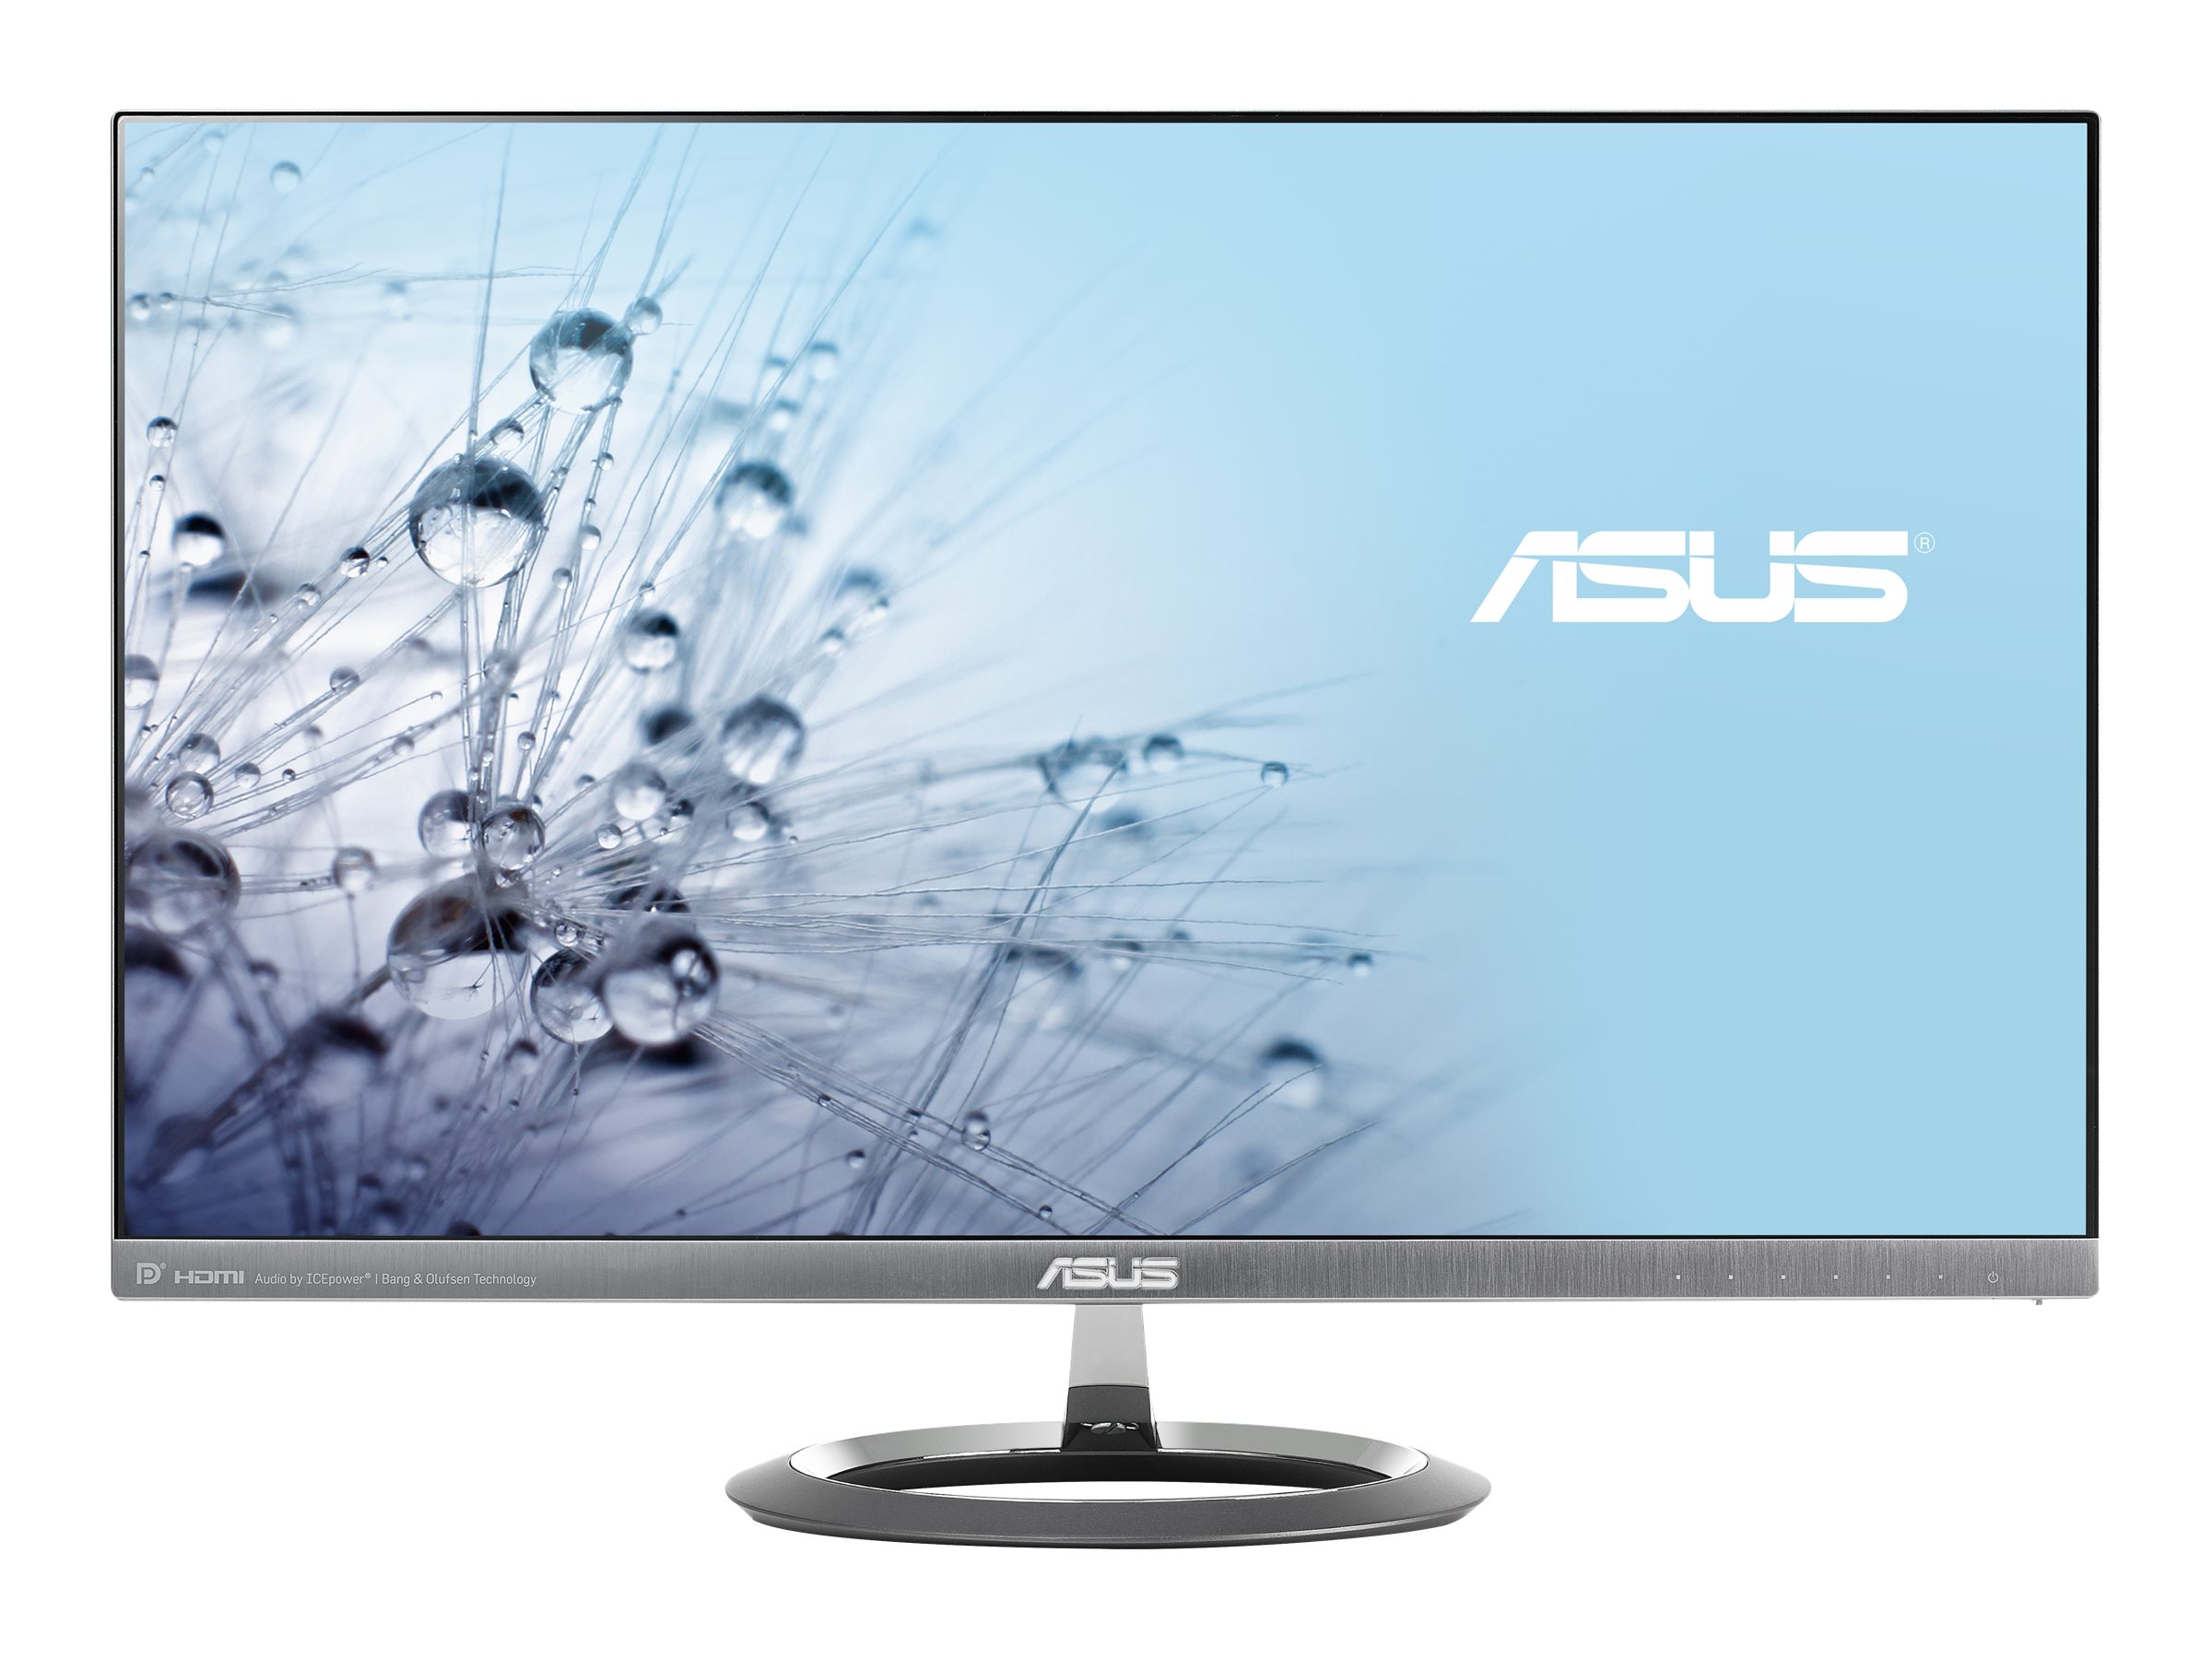 Asus 25 MX25AQ WQHD LED-LCD Monitor, Gray, MX25AQ